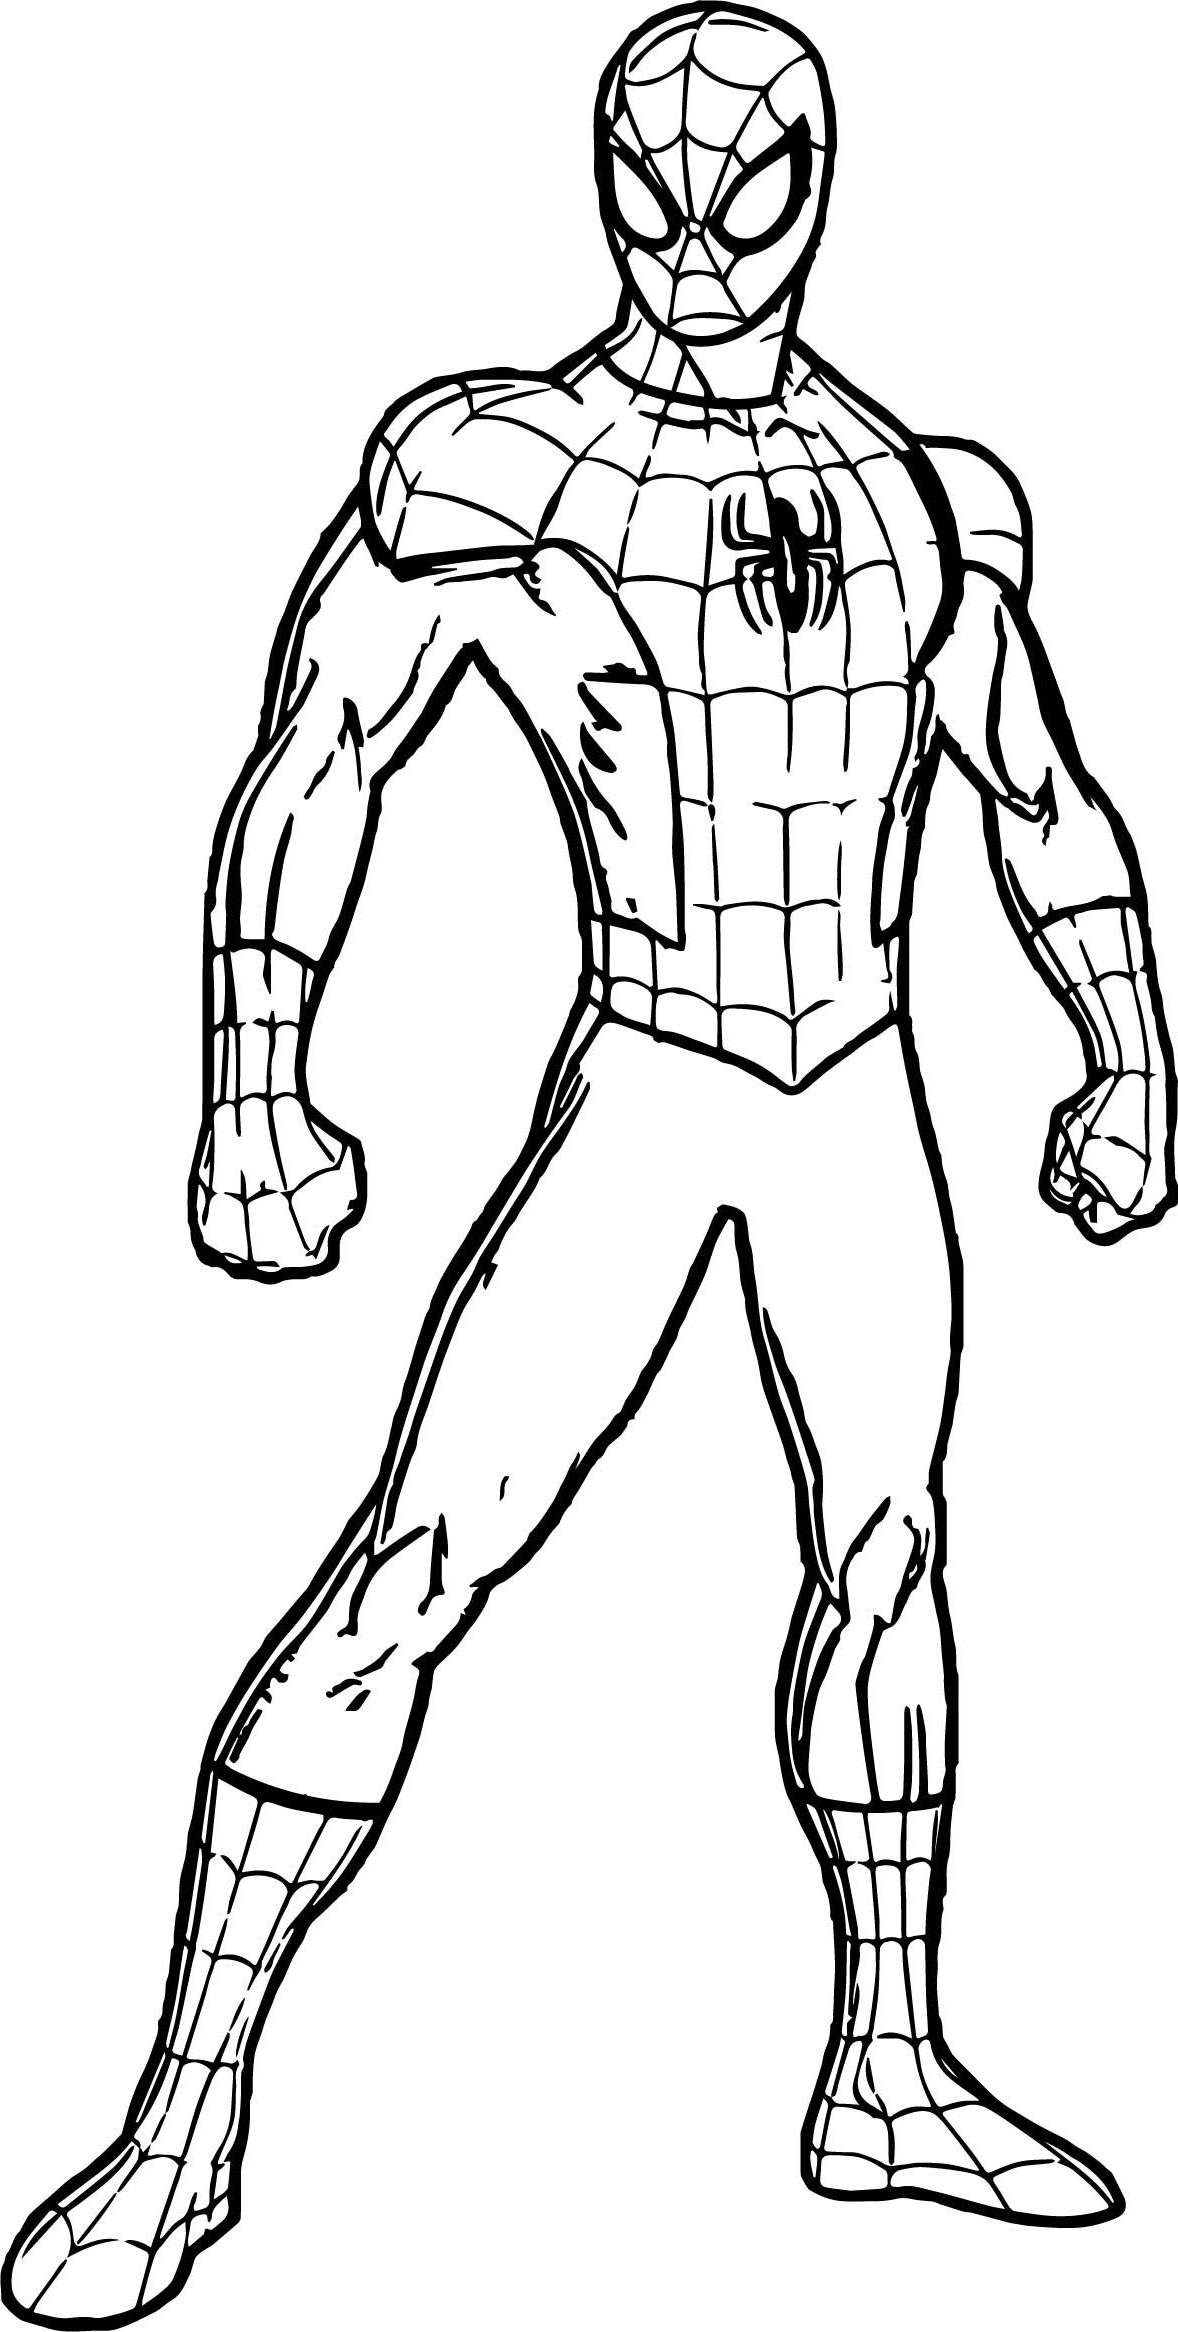 coloring sheet spiderman coloring pages free printable black spiderman coloring pages pages coloring spiderman coloring sheet